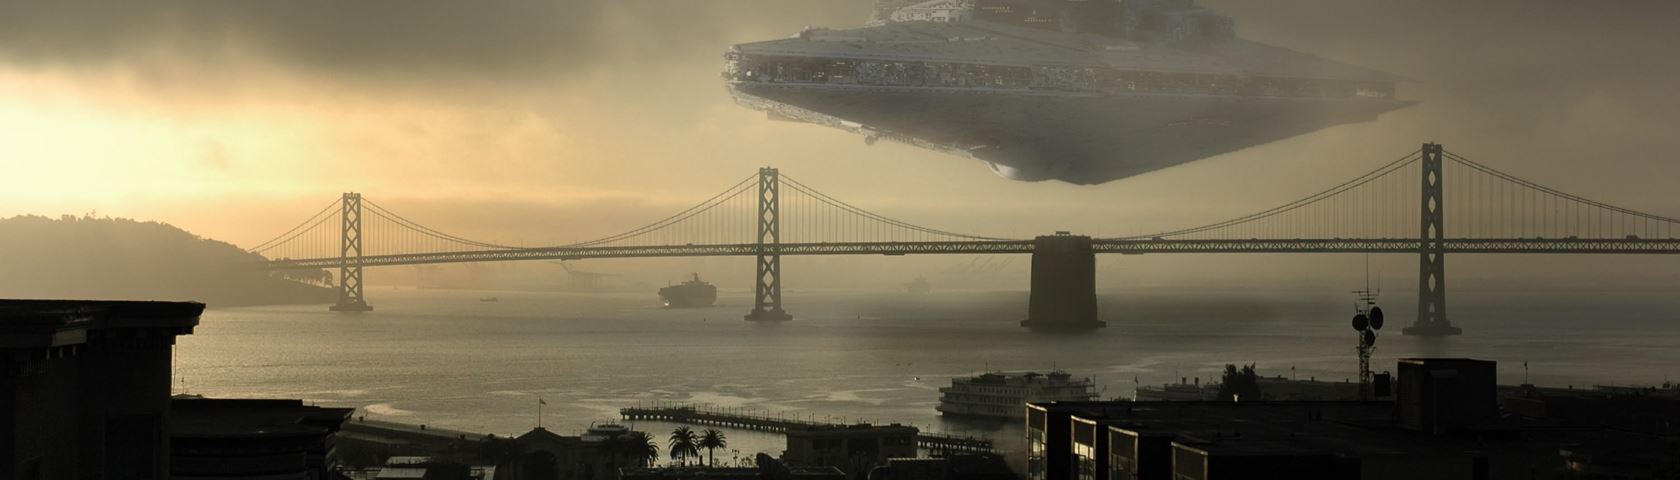 A Star Destroyer in San Francisco